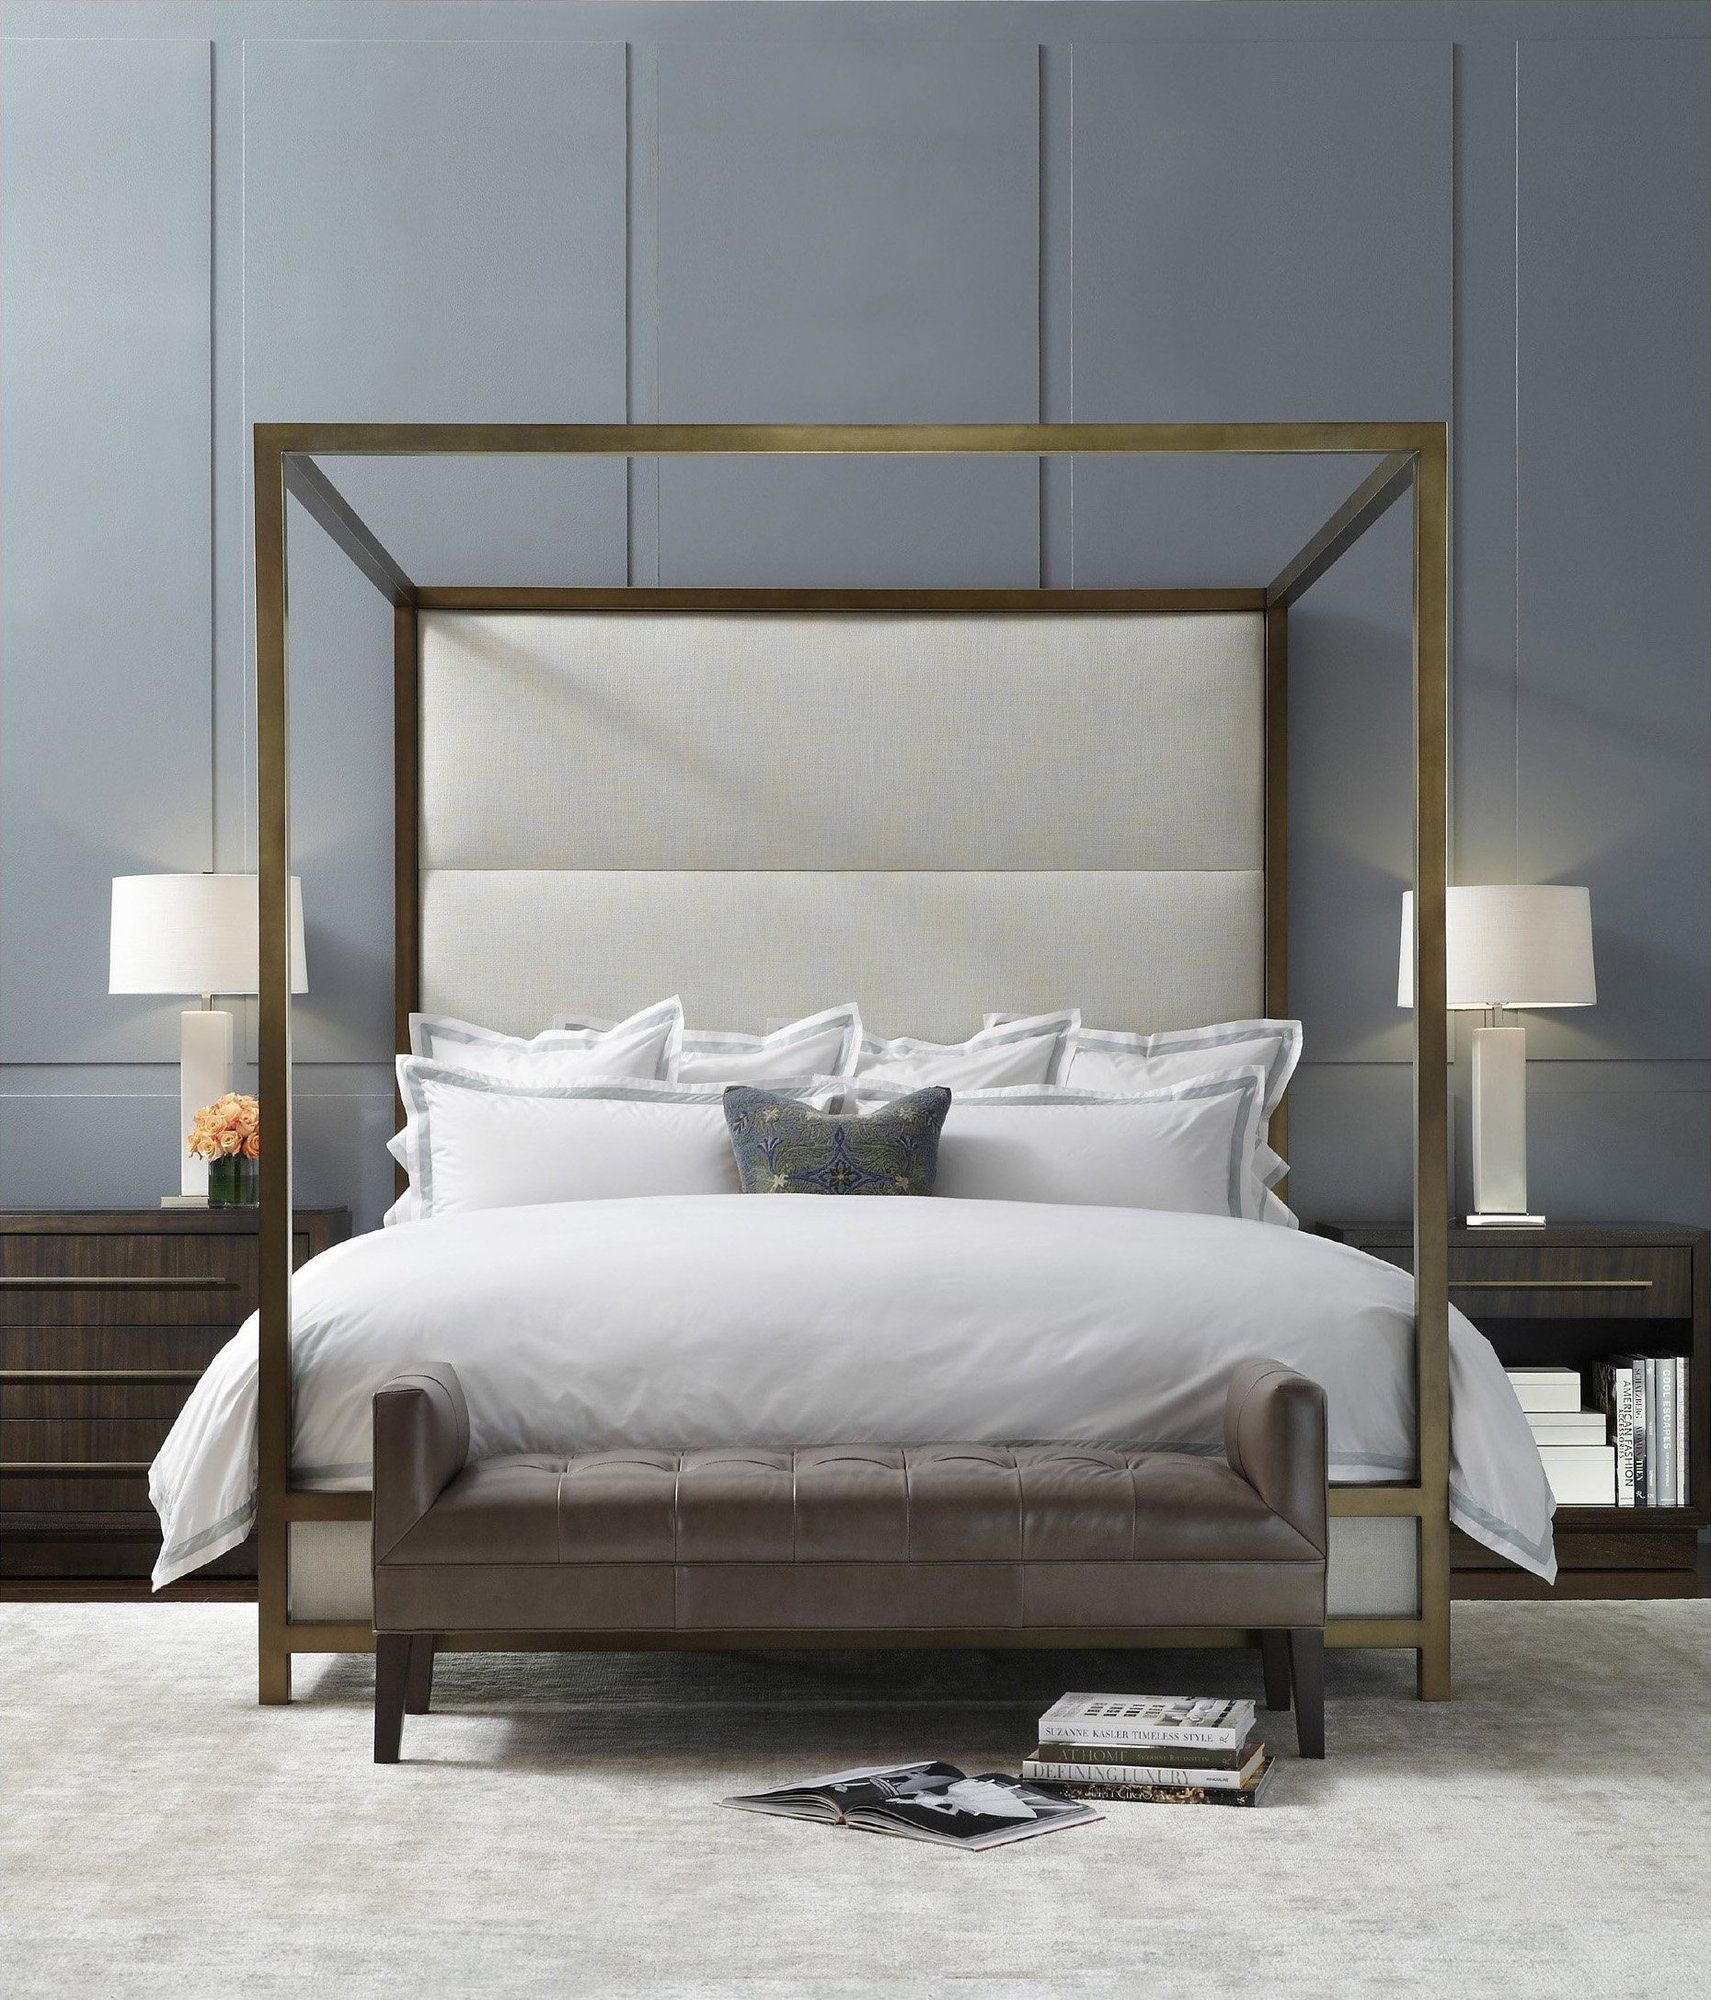 Putting A Value On Staging Bed Interior Bedroom Design Modern Bed